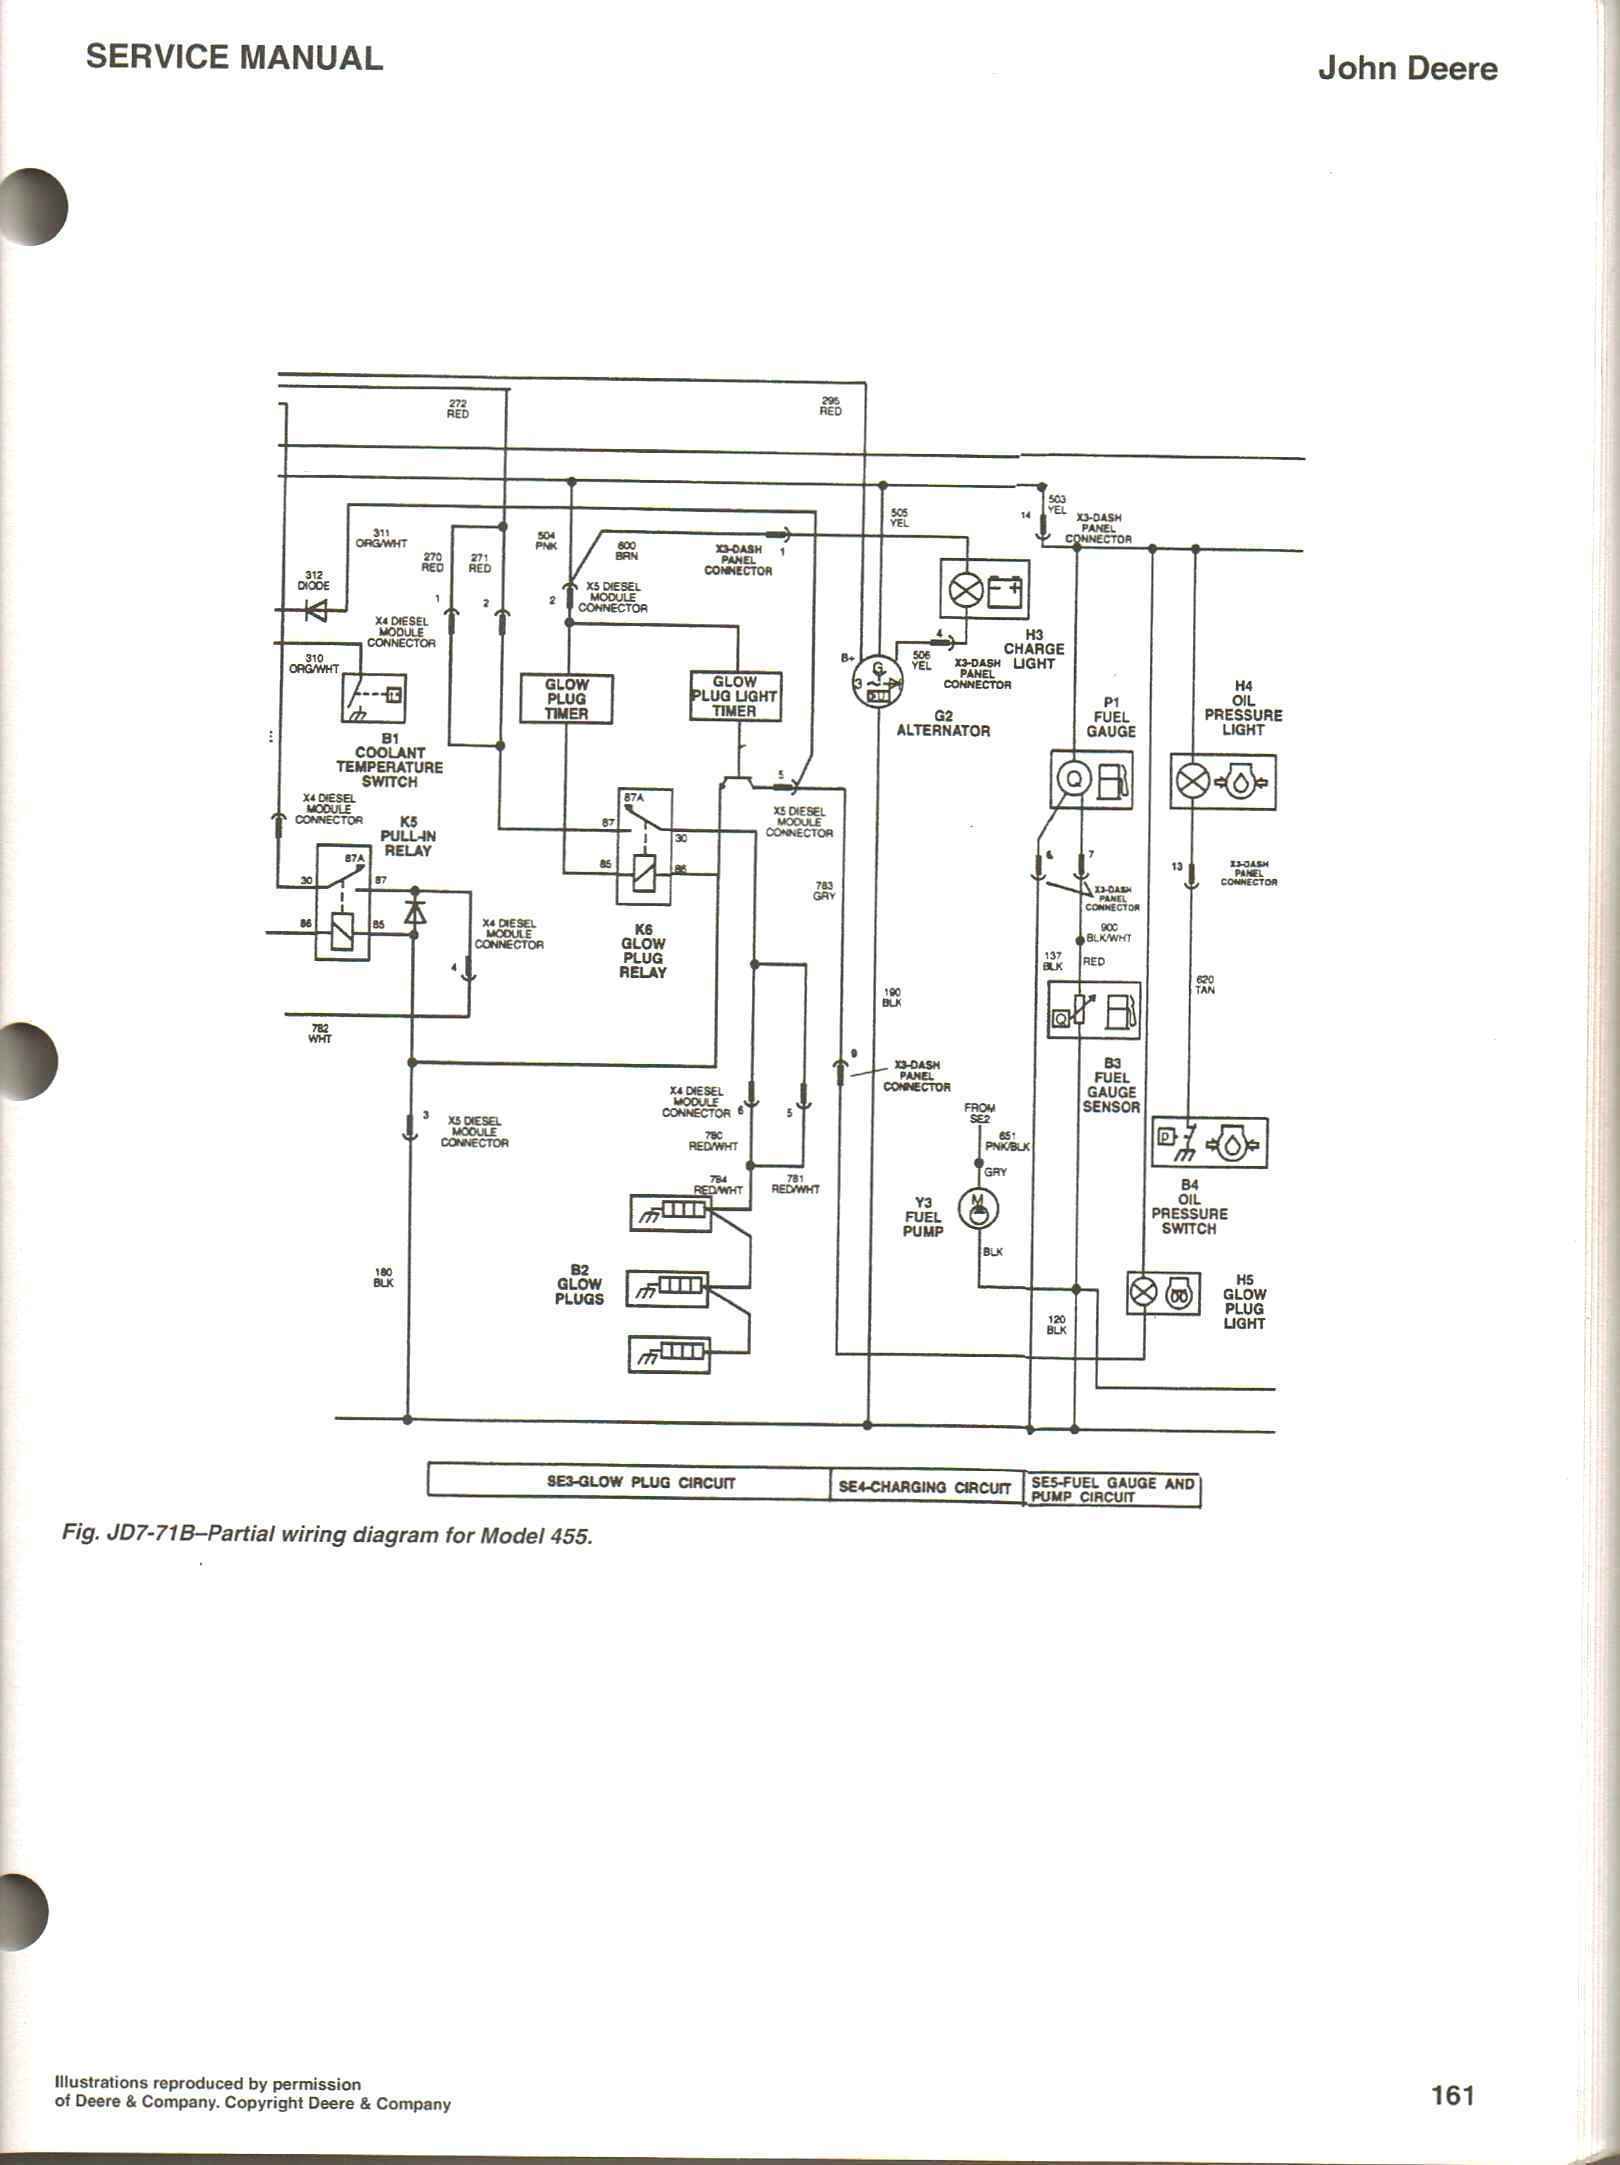 Gator 850d Wiring Diagram | Wiring Diagrams on